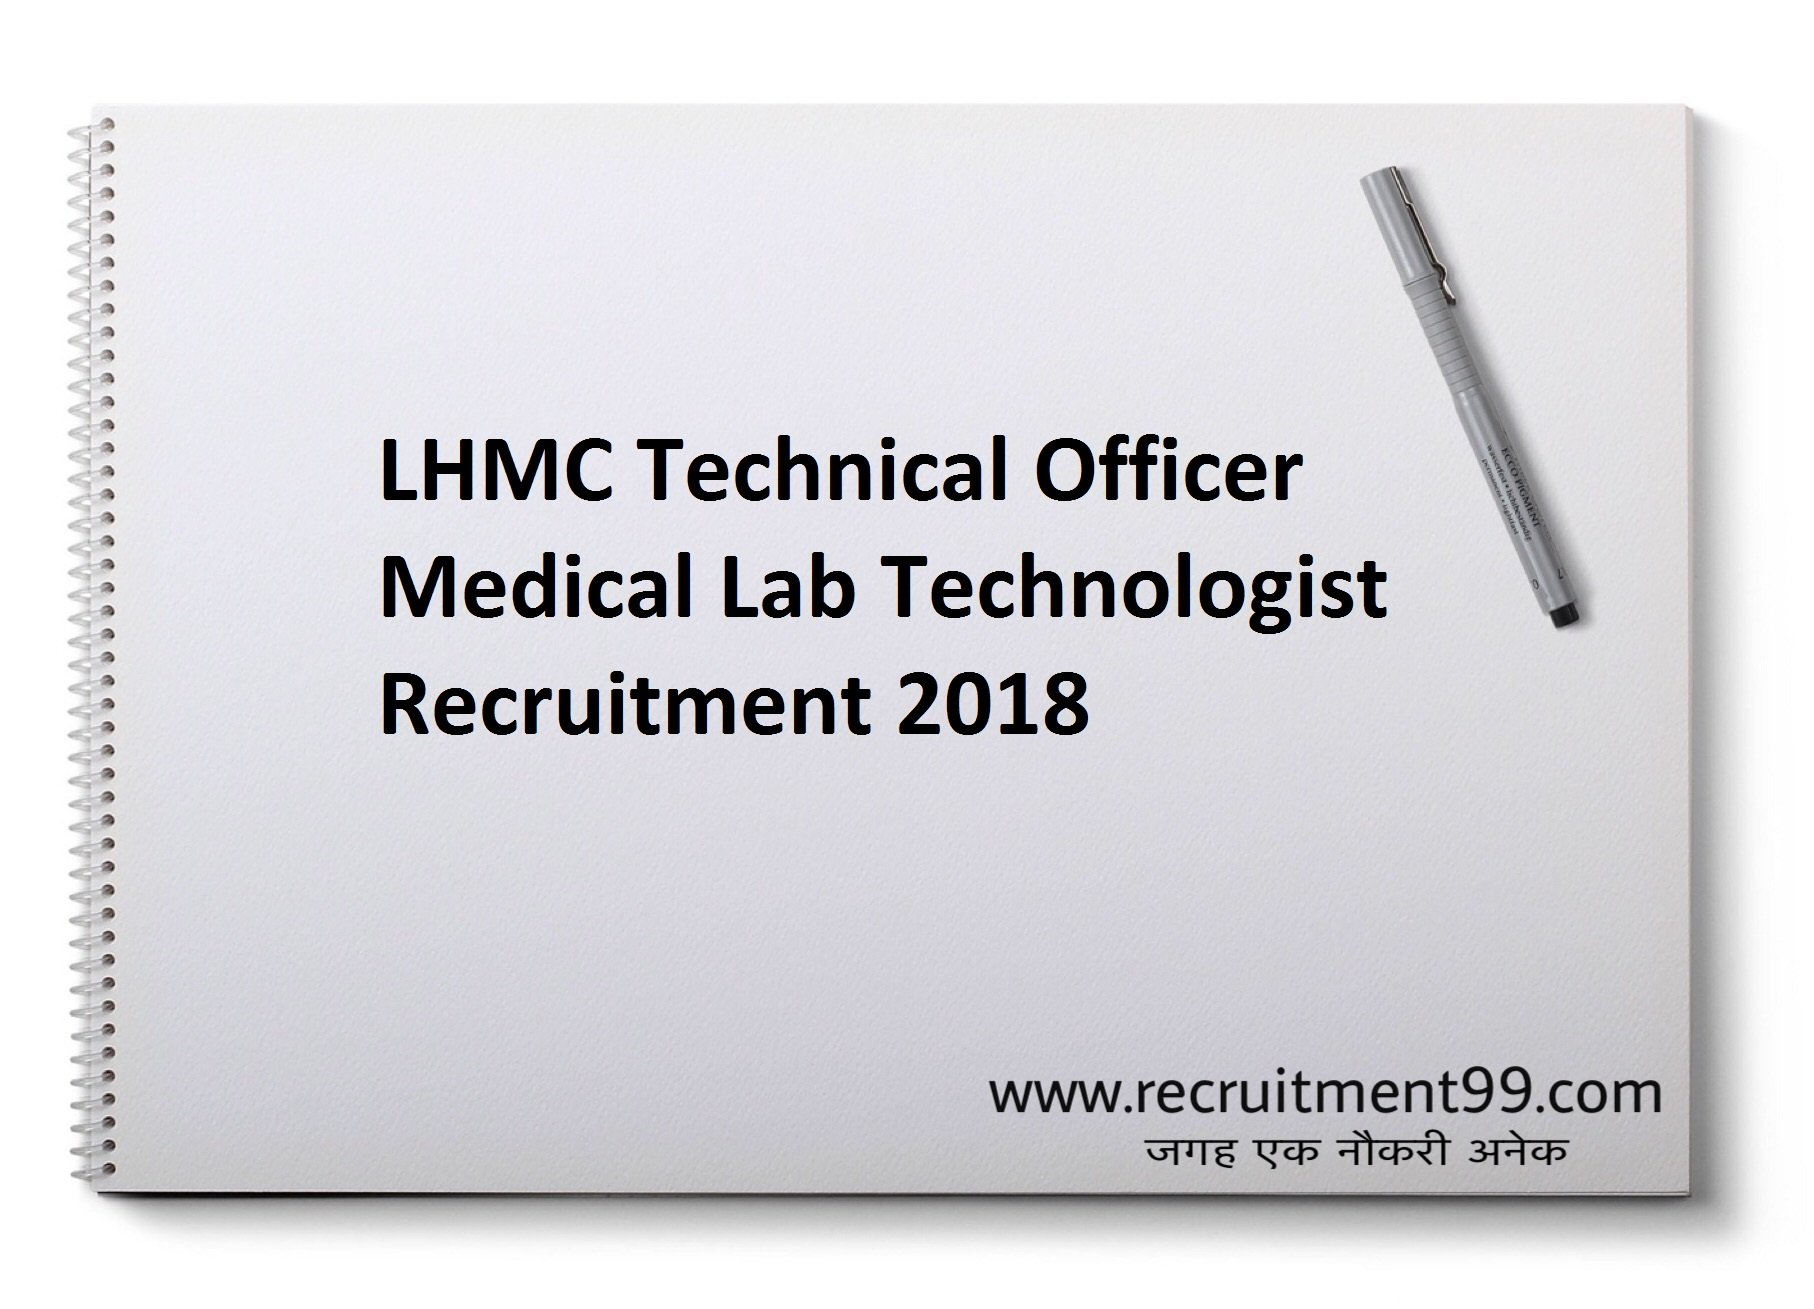 LHMC Technical Officer Medical Lab Technologist Recruitment Admit Card Result 2018